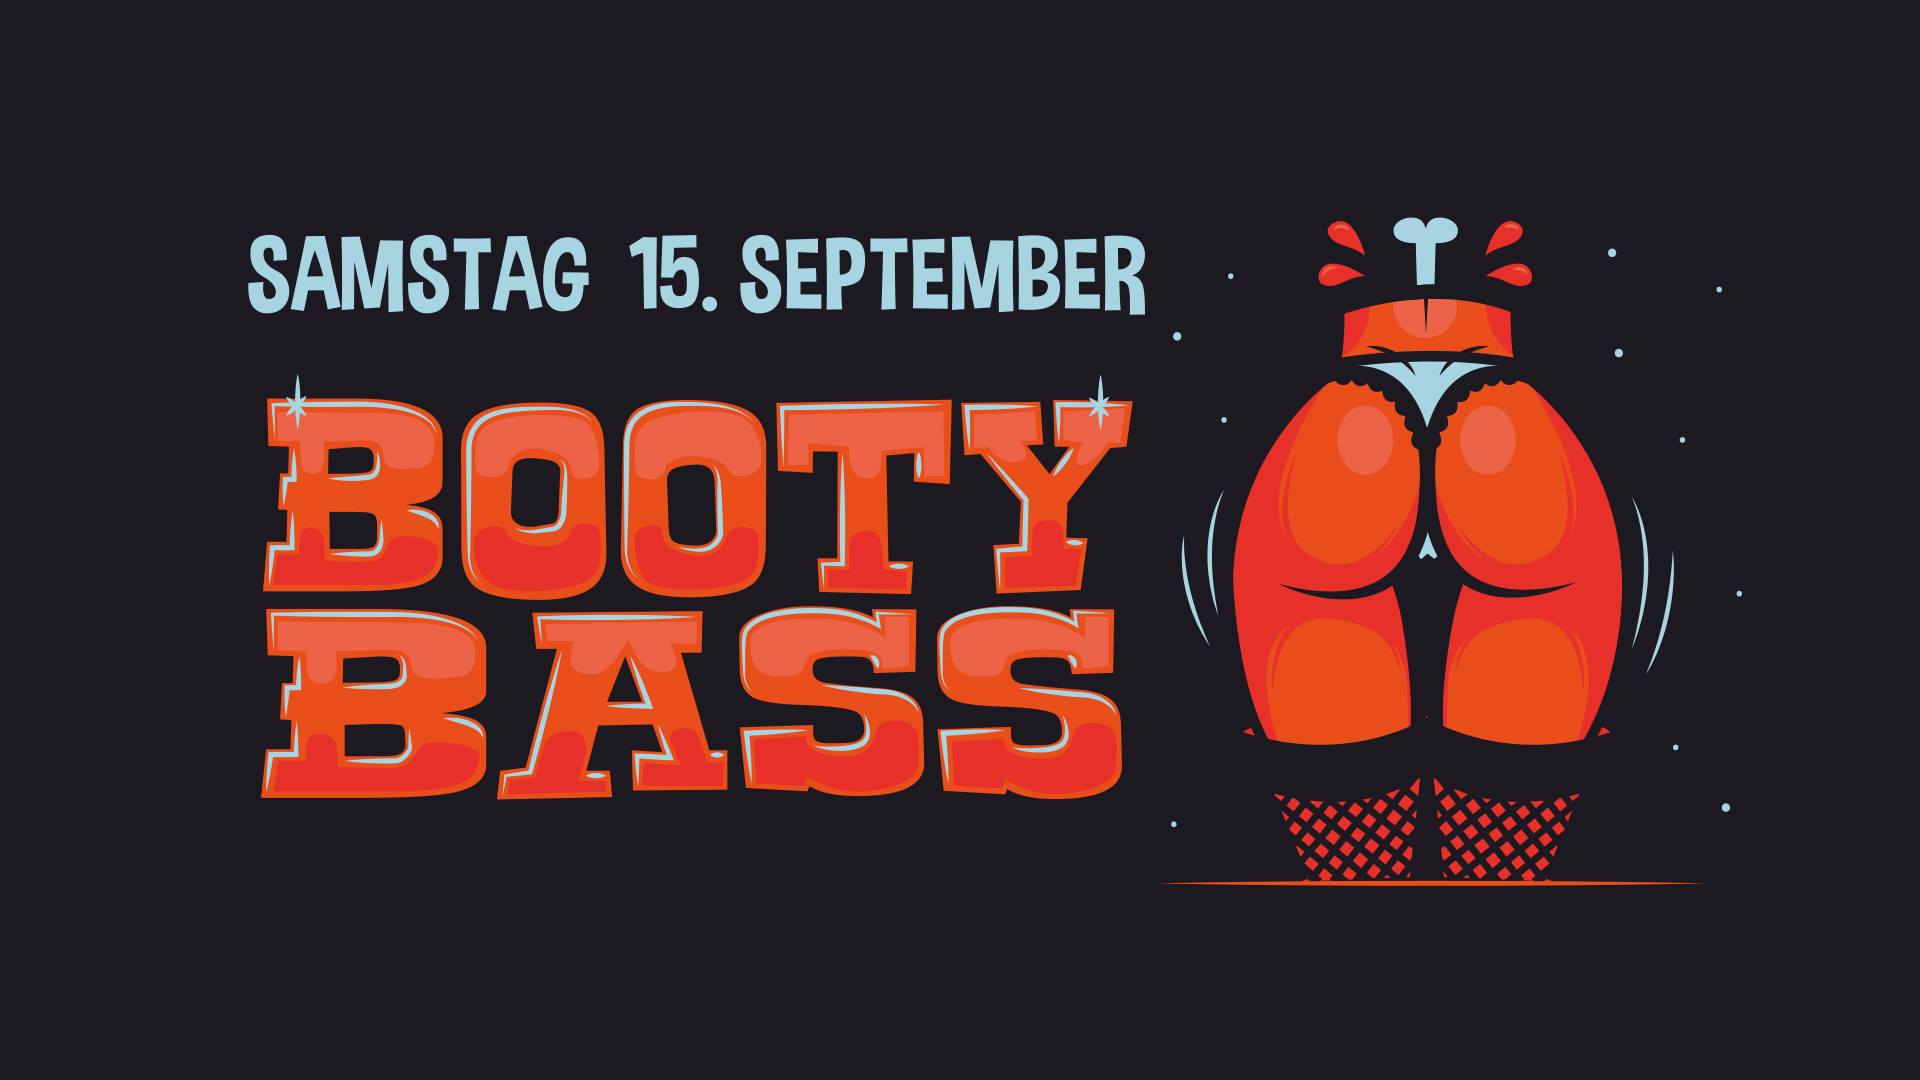 15.9.2018 - BOOTY BASS [Münster]